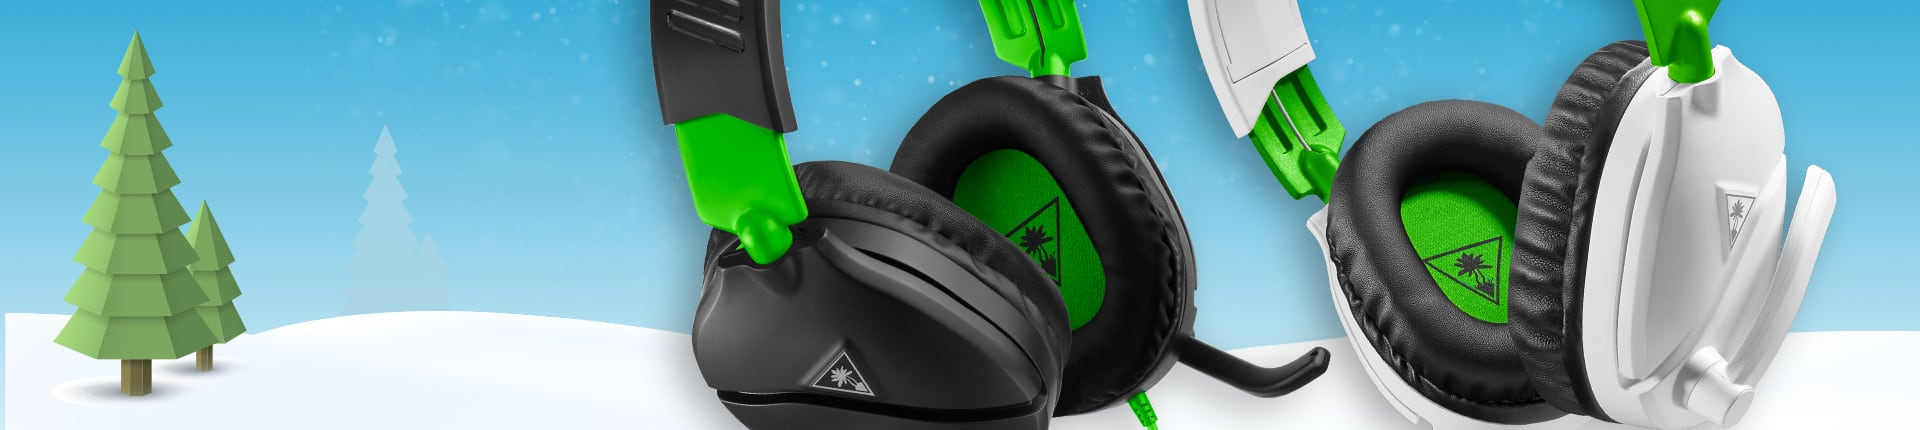 Best Gifts for Xbox Gamers Under $50